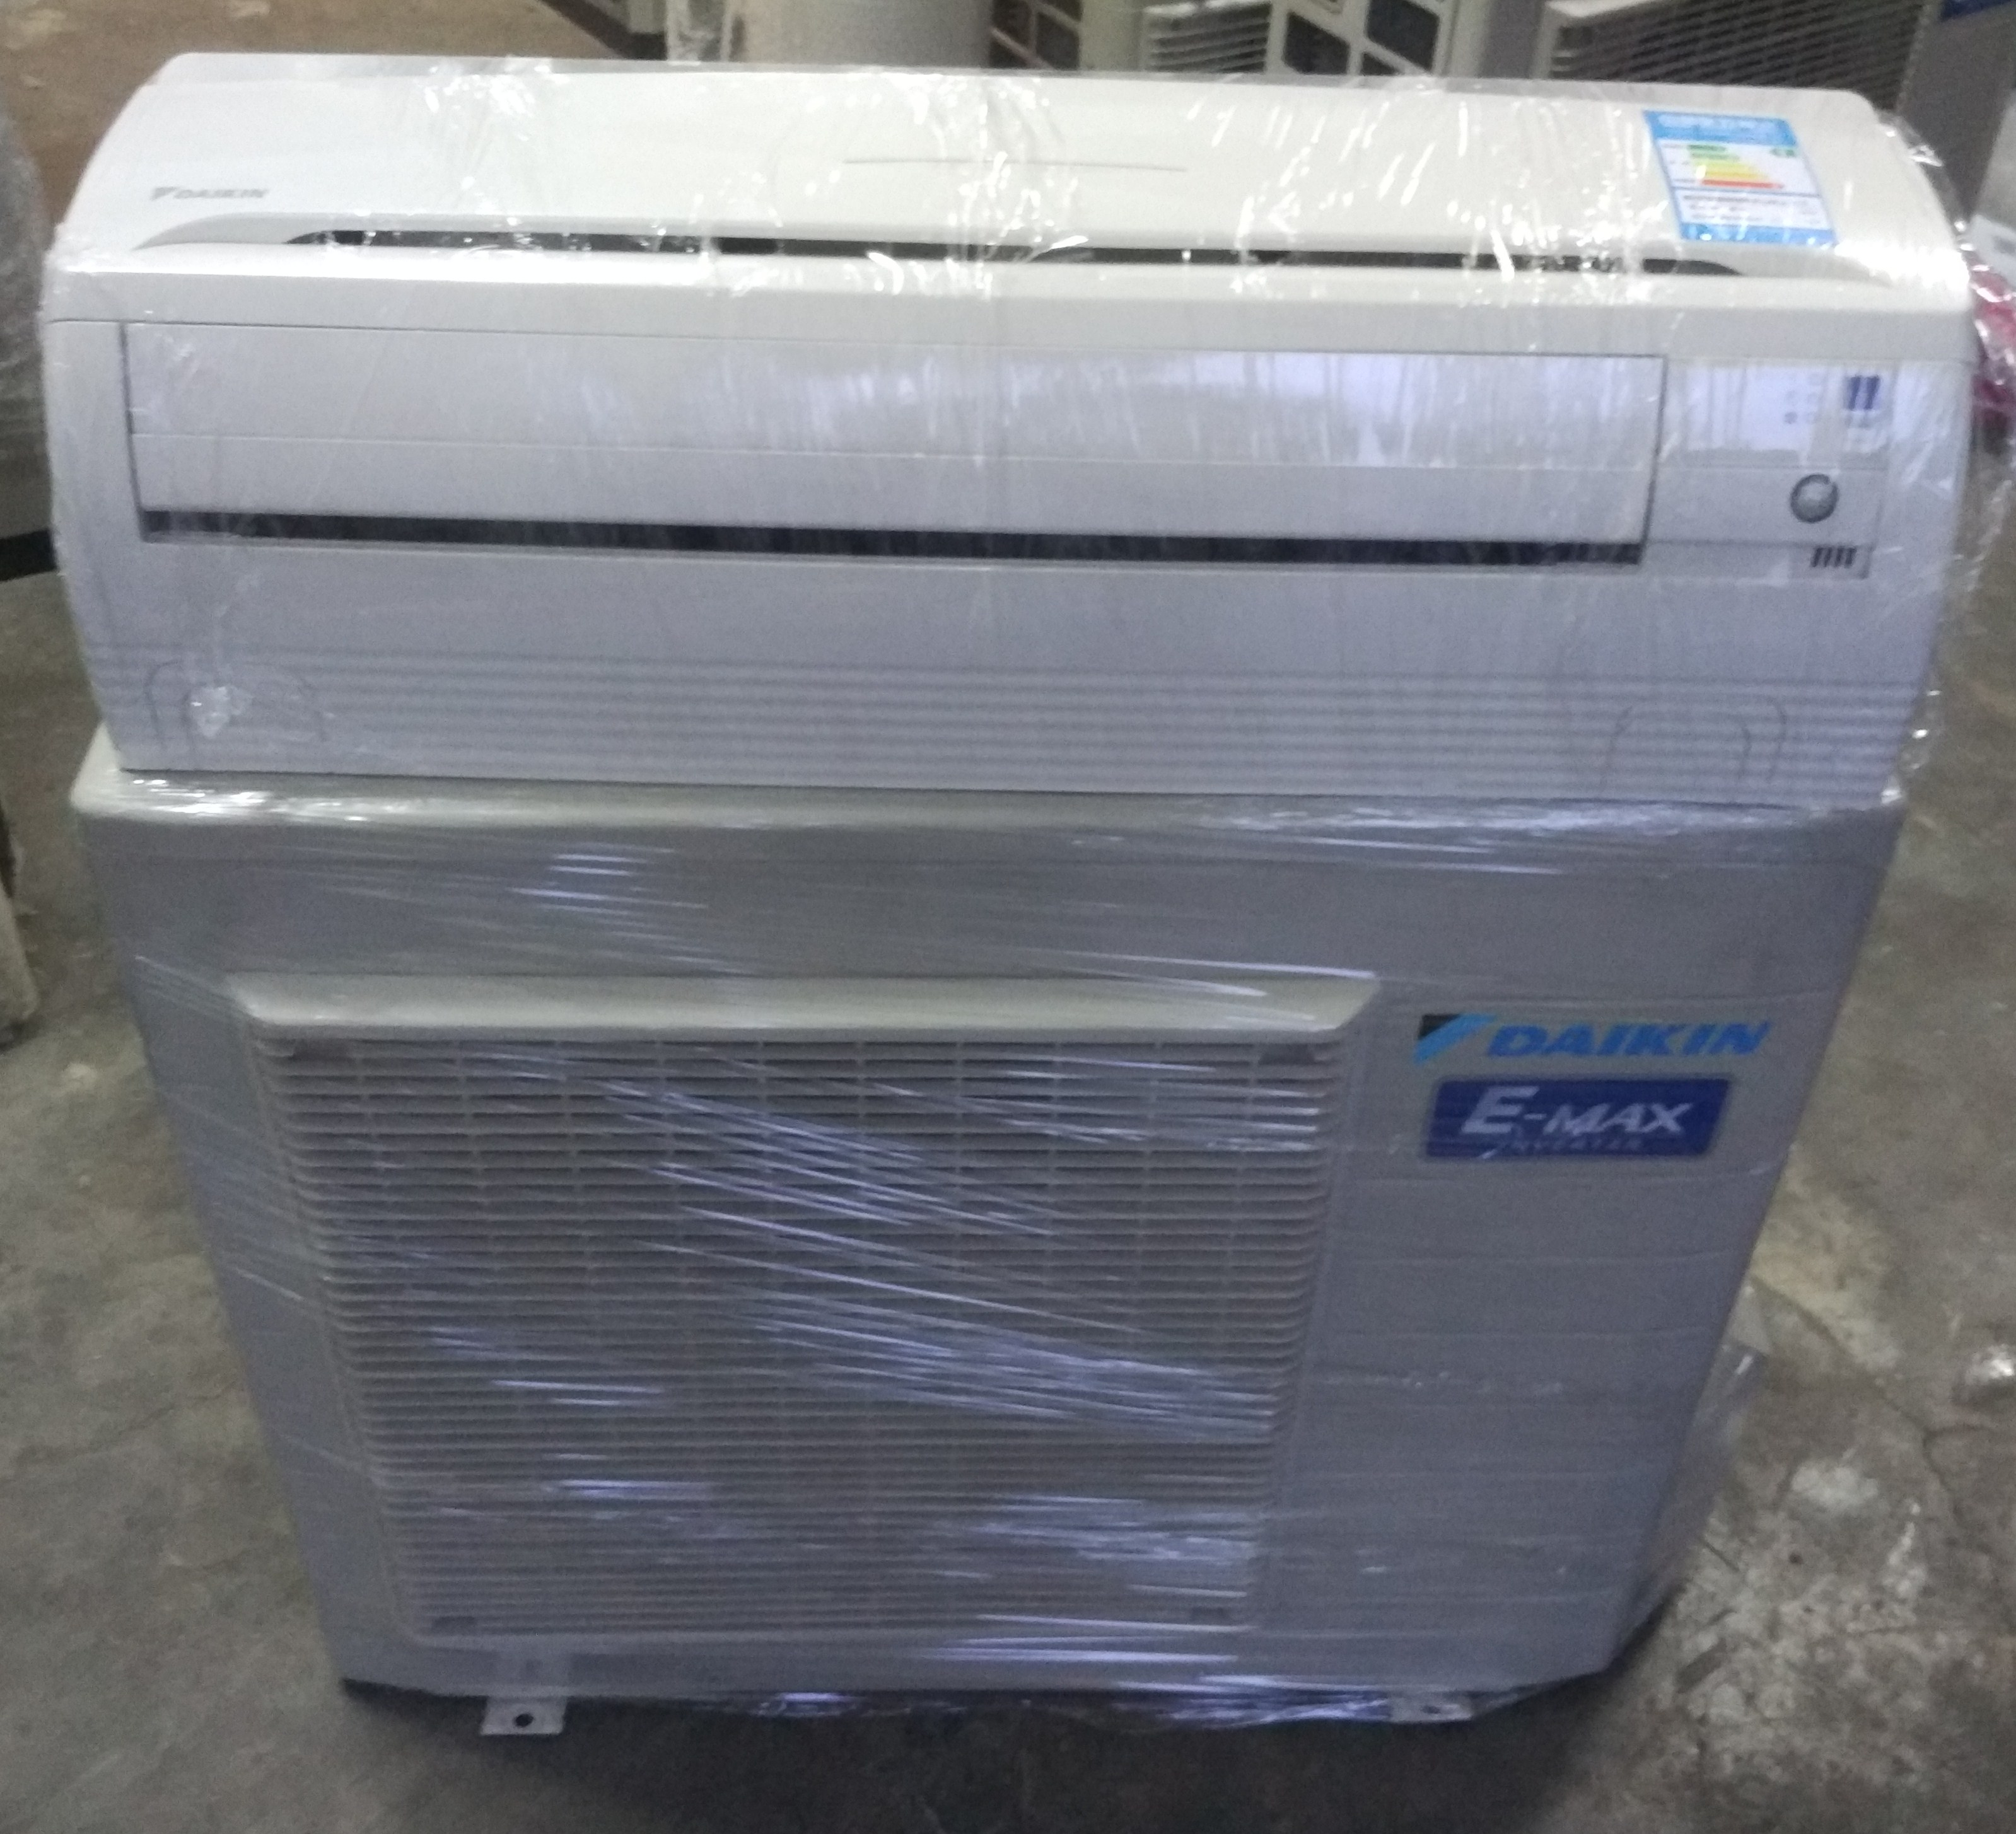 Daikin inverter air conditioning 1.5 2 horses